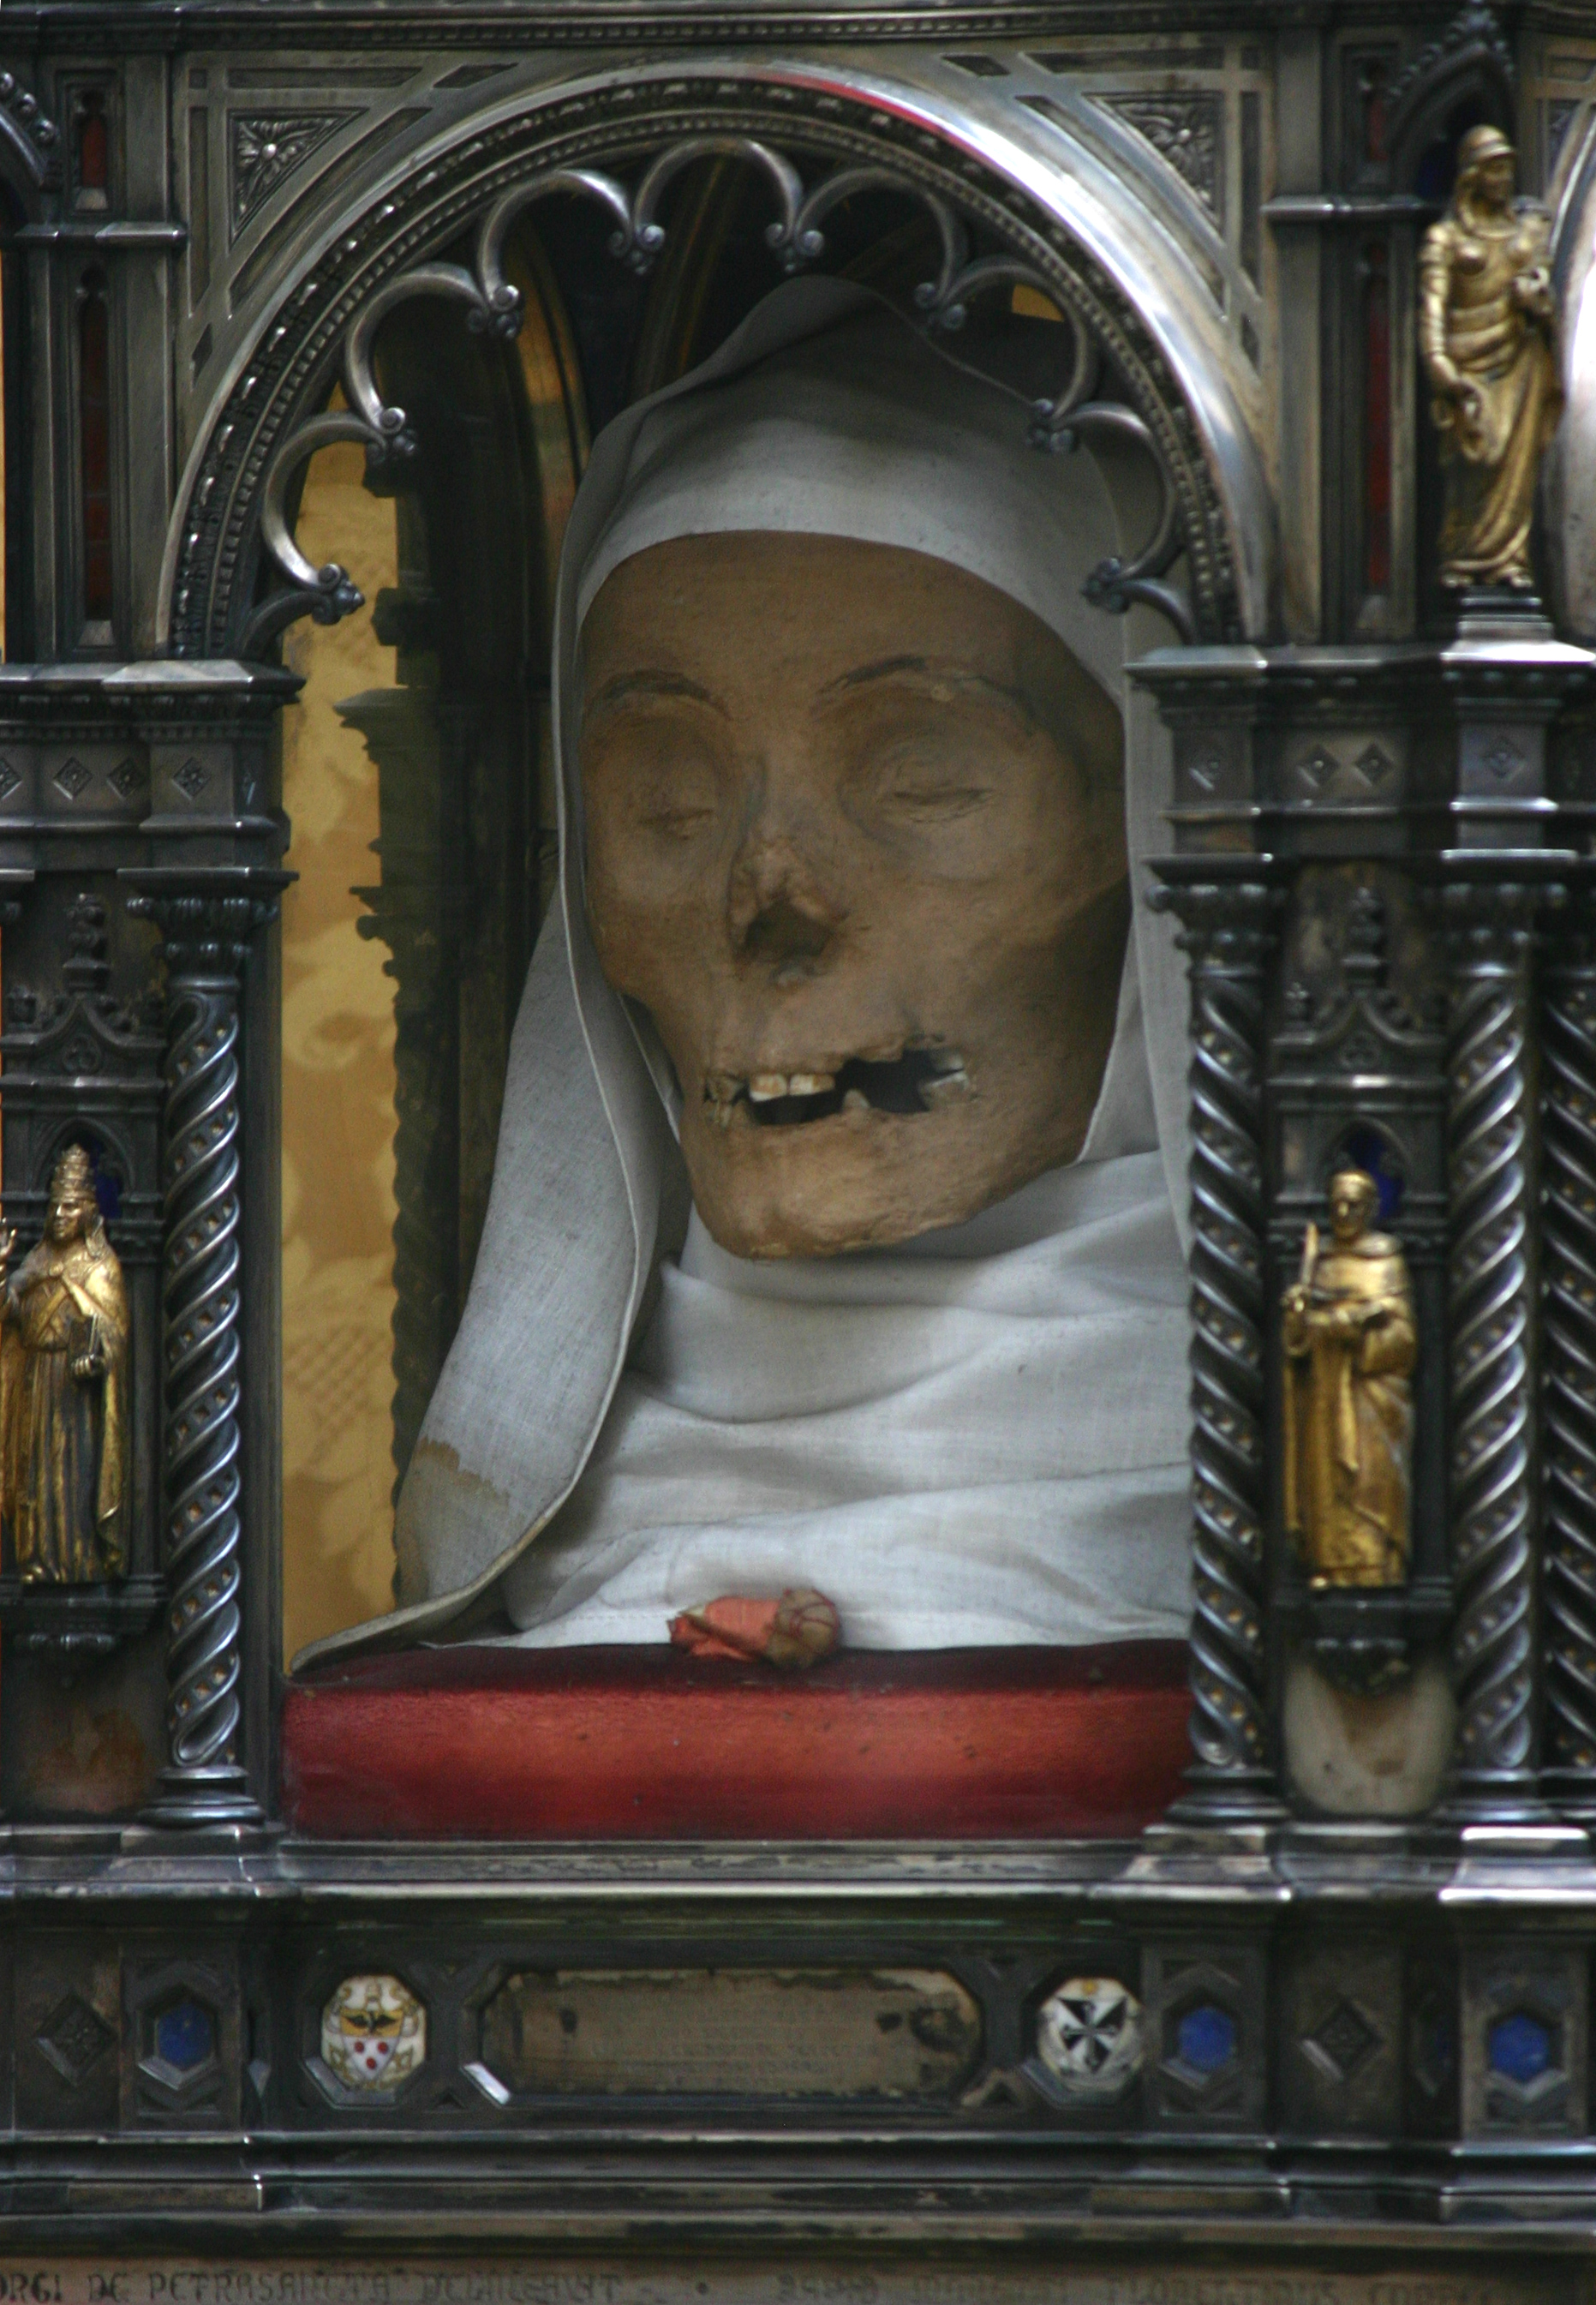 https://upload.wikimedia.org/wikipedia/commons/4/45/Head_of_Saint_Catherine_of_Siena.jpg